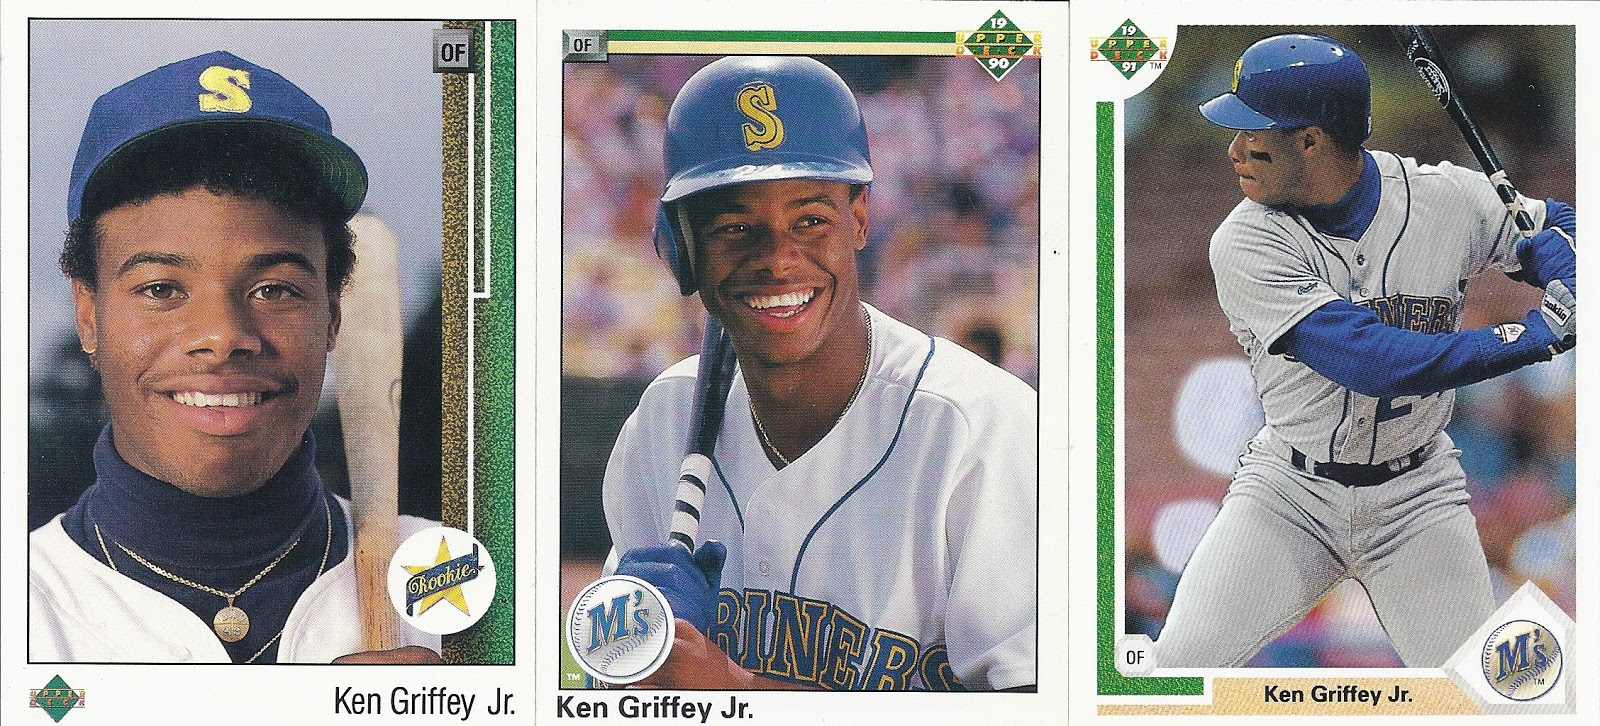 The Junior Junkie The Baseball Cards Of Ken Griffey Jr And Beyond